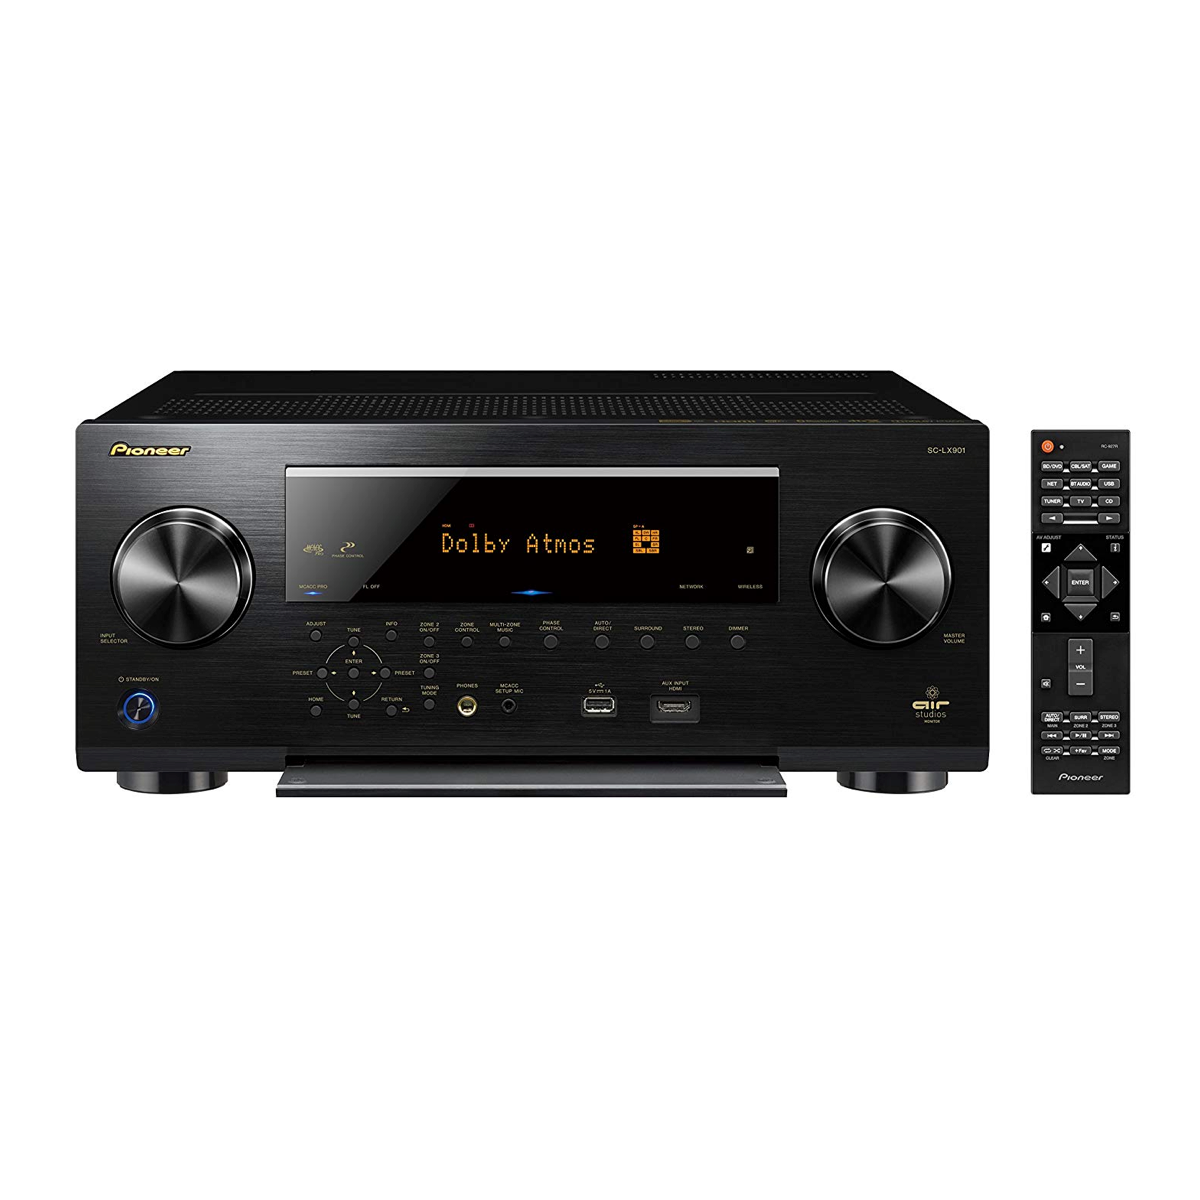 Pioneer SC-LX901 - 11.2 Channel Class D3 Network AV Receiver - AVStore.in